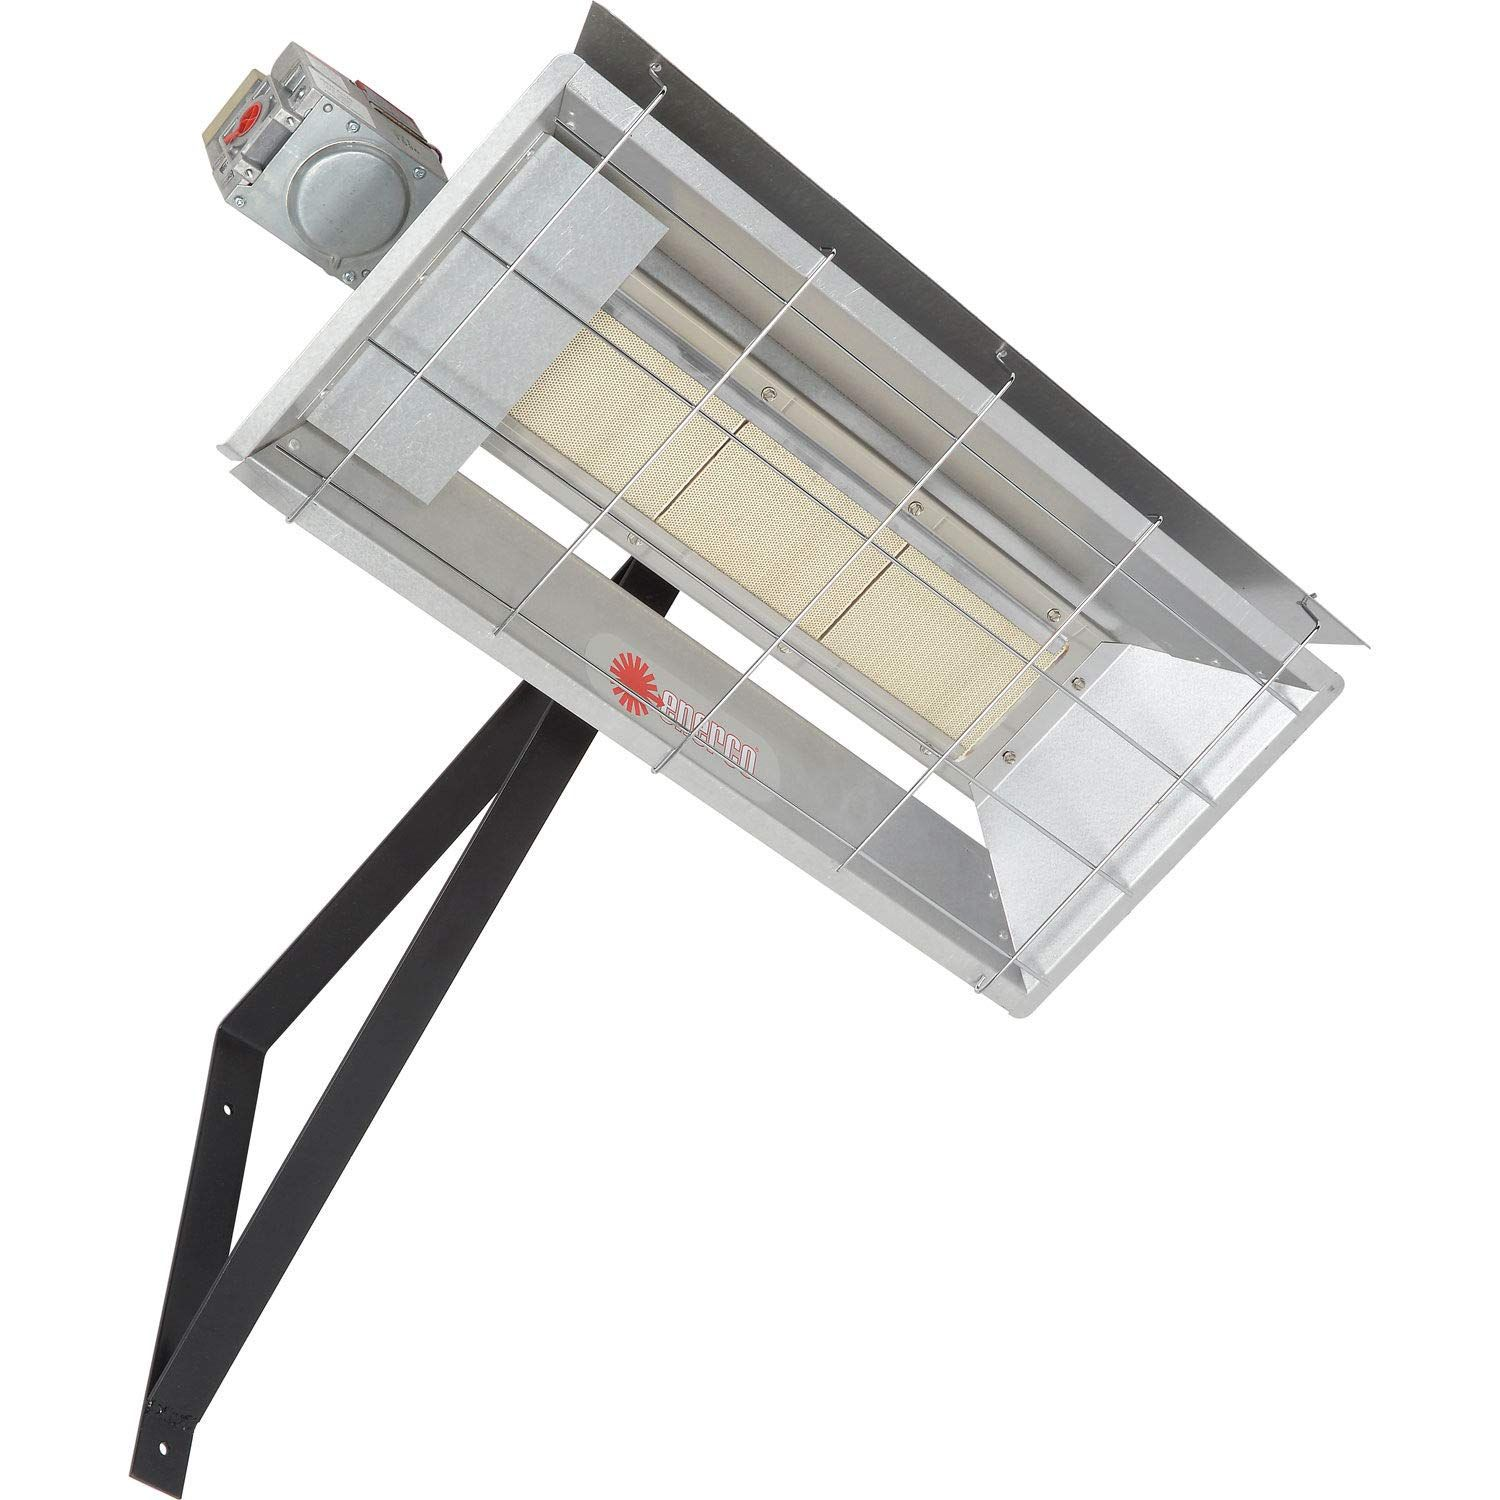 Top 10 Best Radiant Tube Heaters Reviews In 2020 in 2020